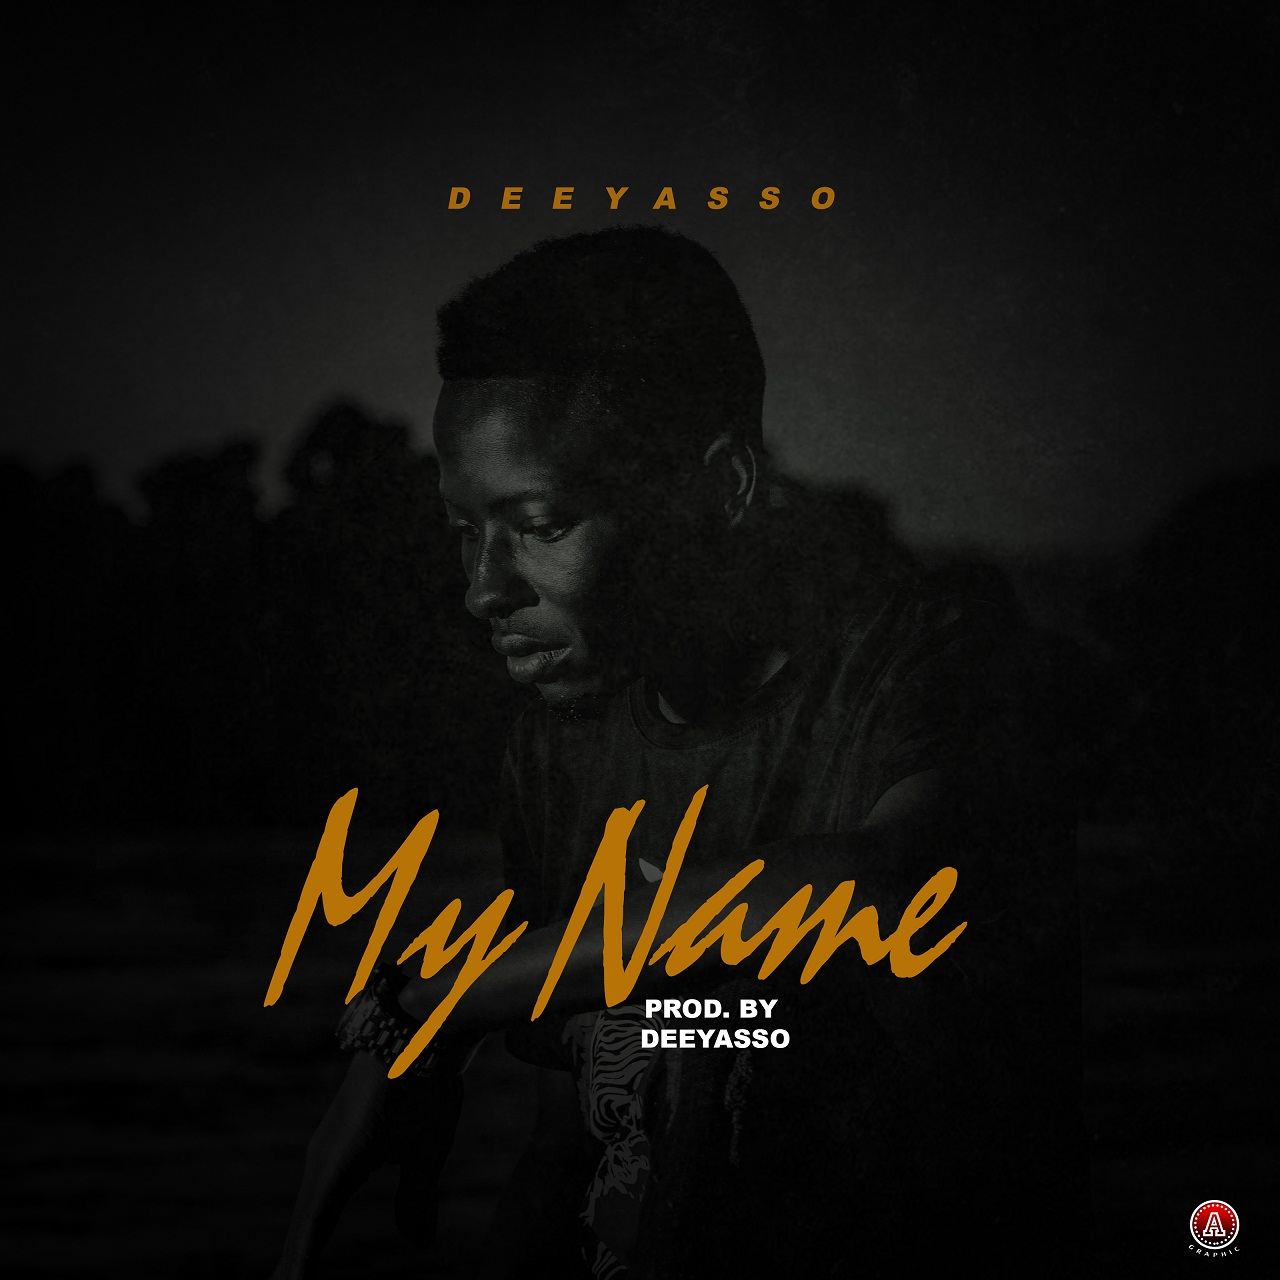 DOWNLOAD MP3: Dee Yasso - My Name | @deeyasso1 - Welcome to